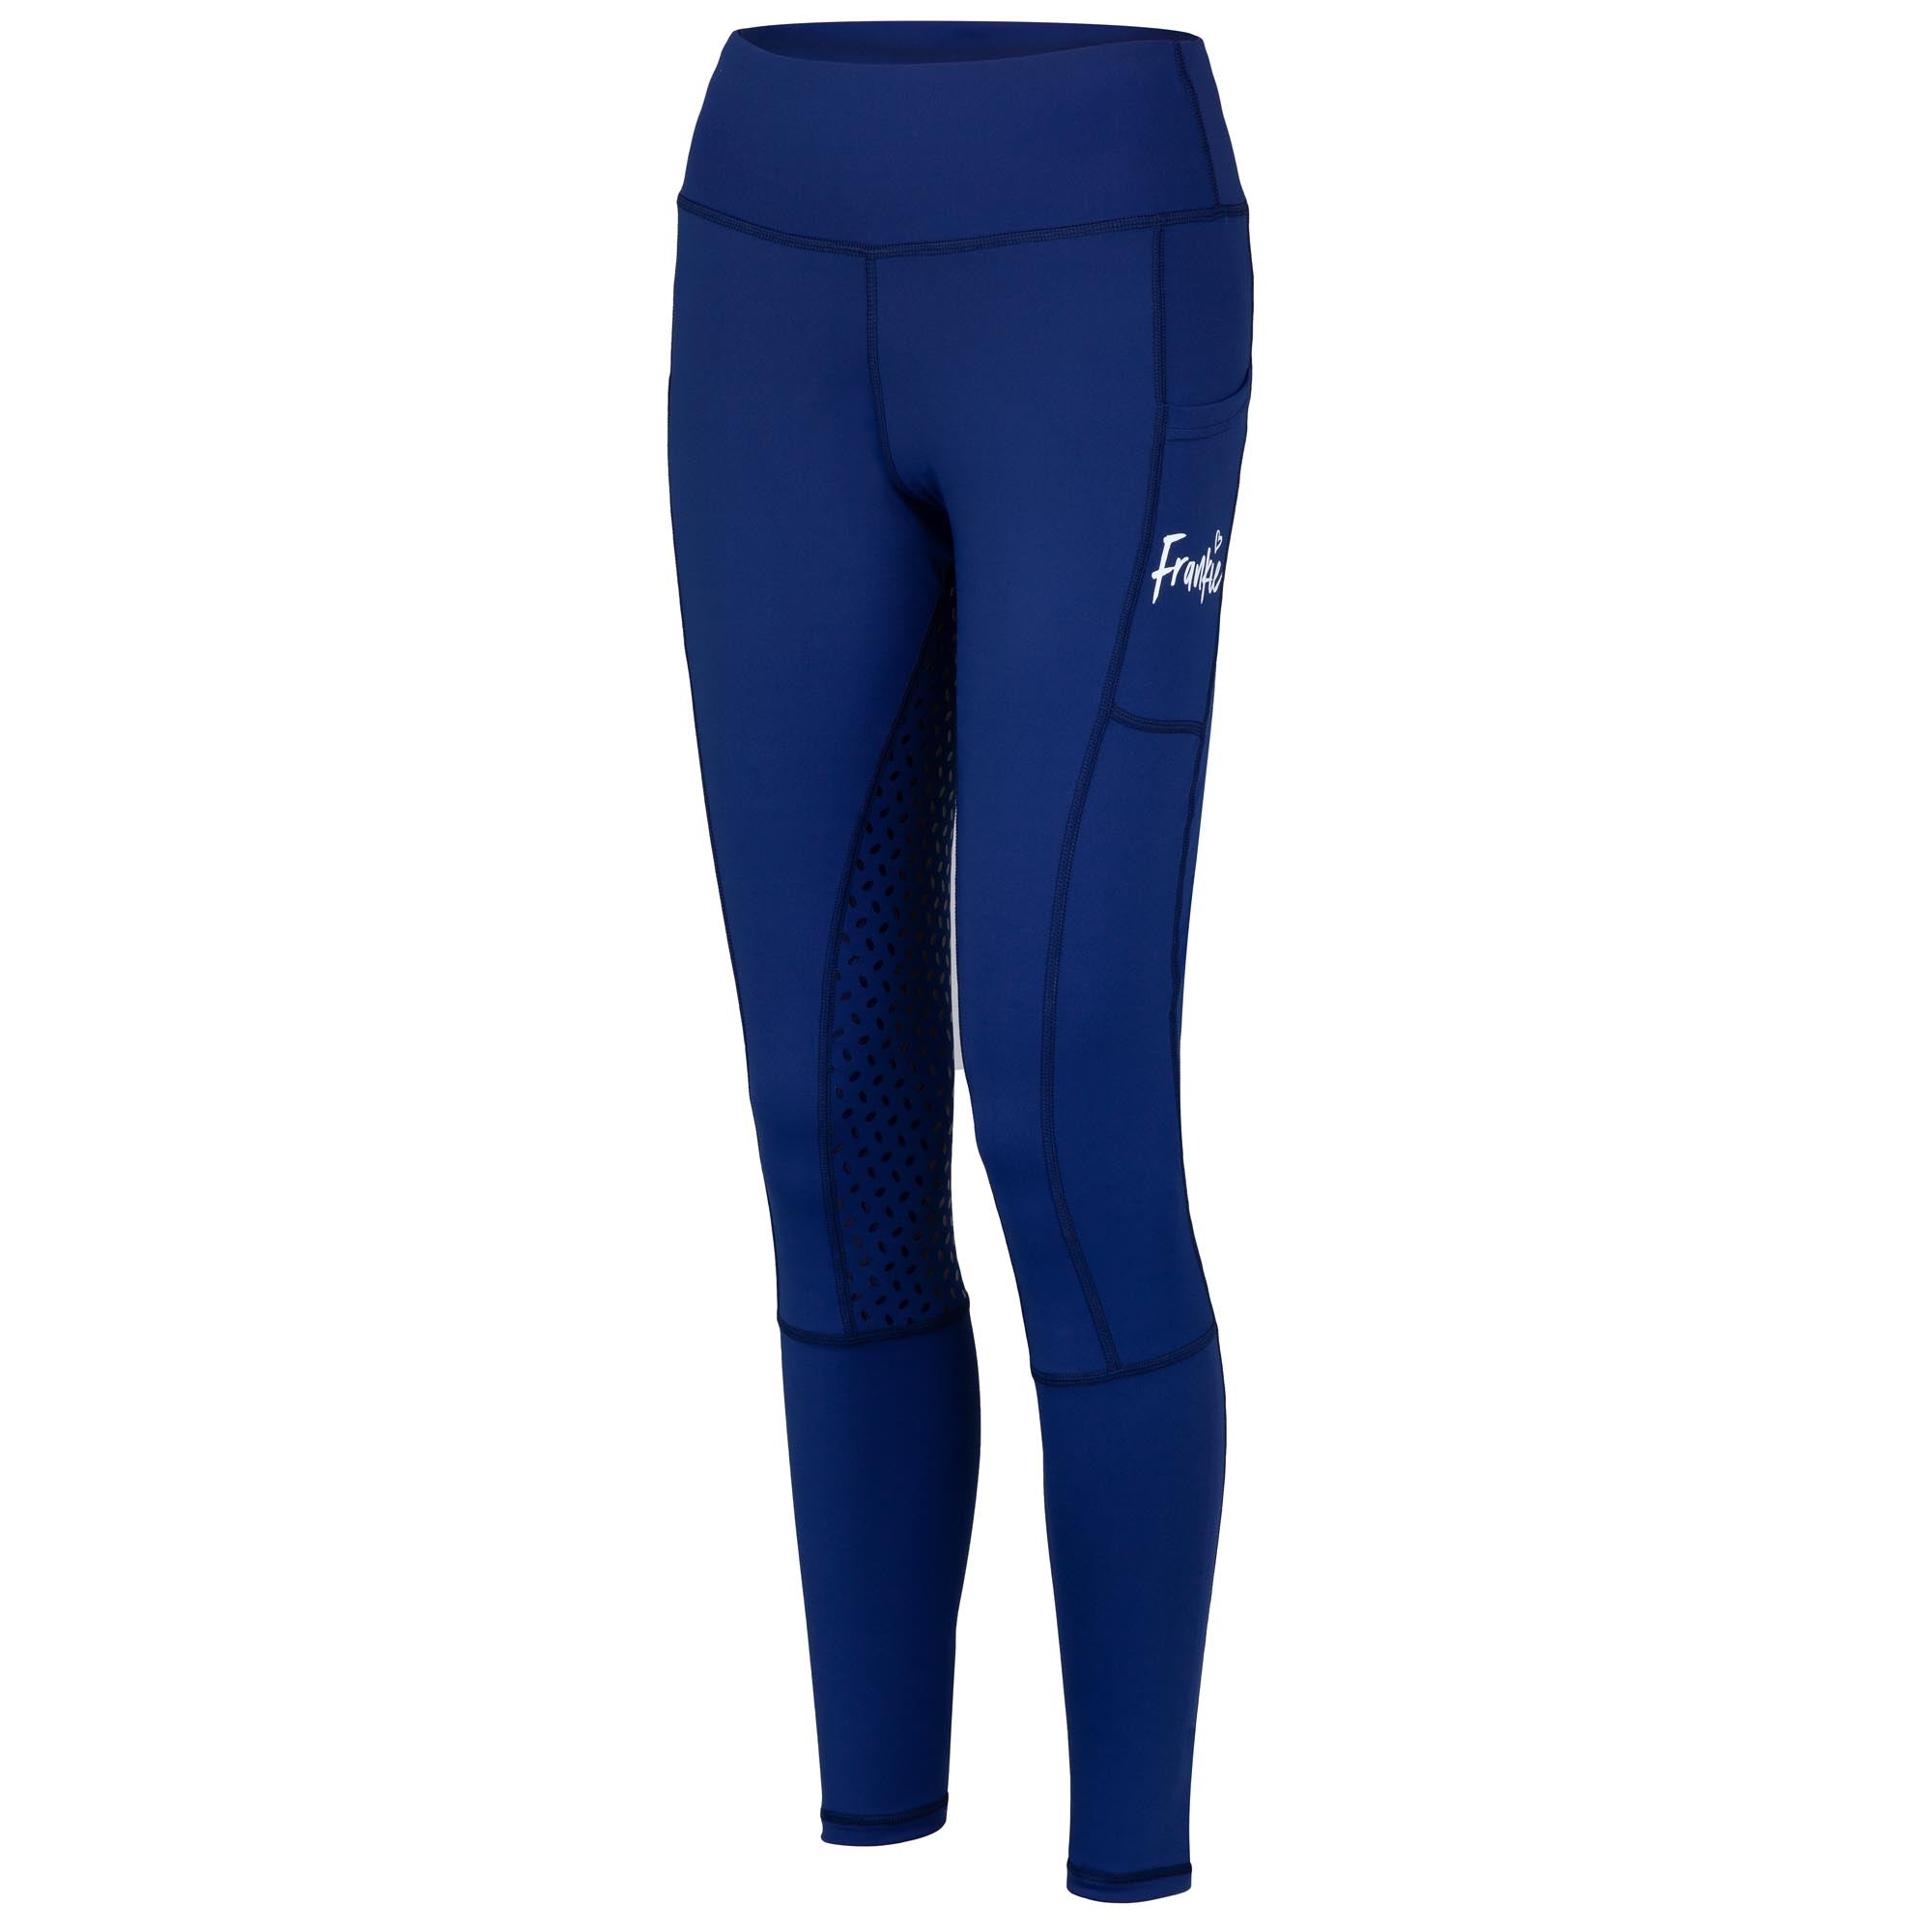 Frankie Comfort Grip High Waist Legging Breeches - Dark Blue